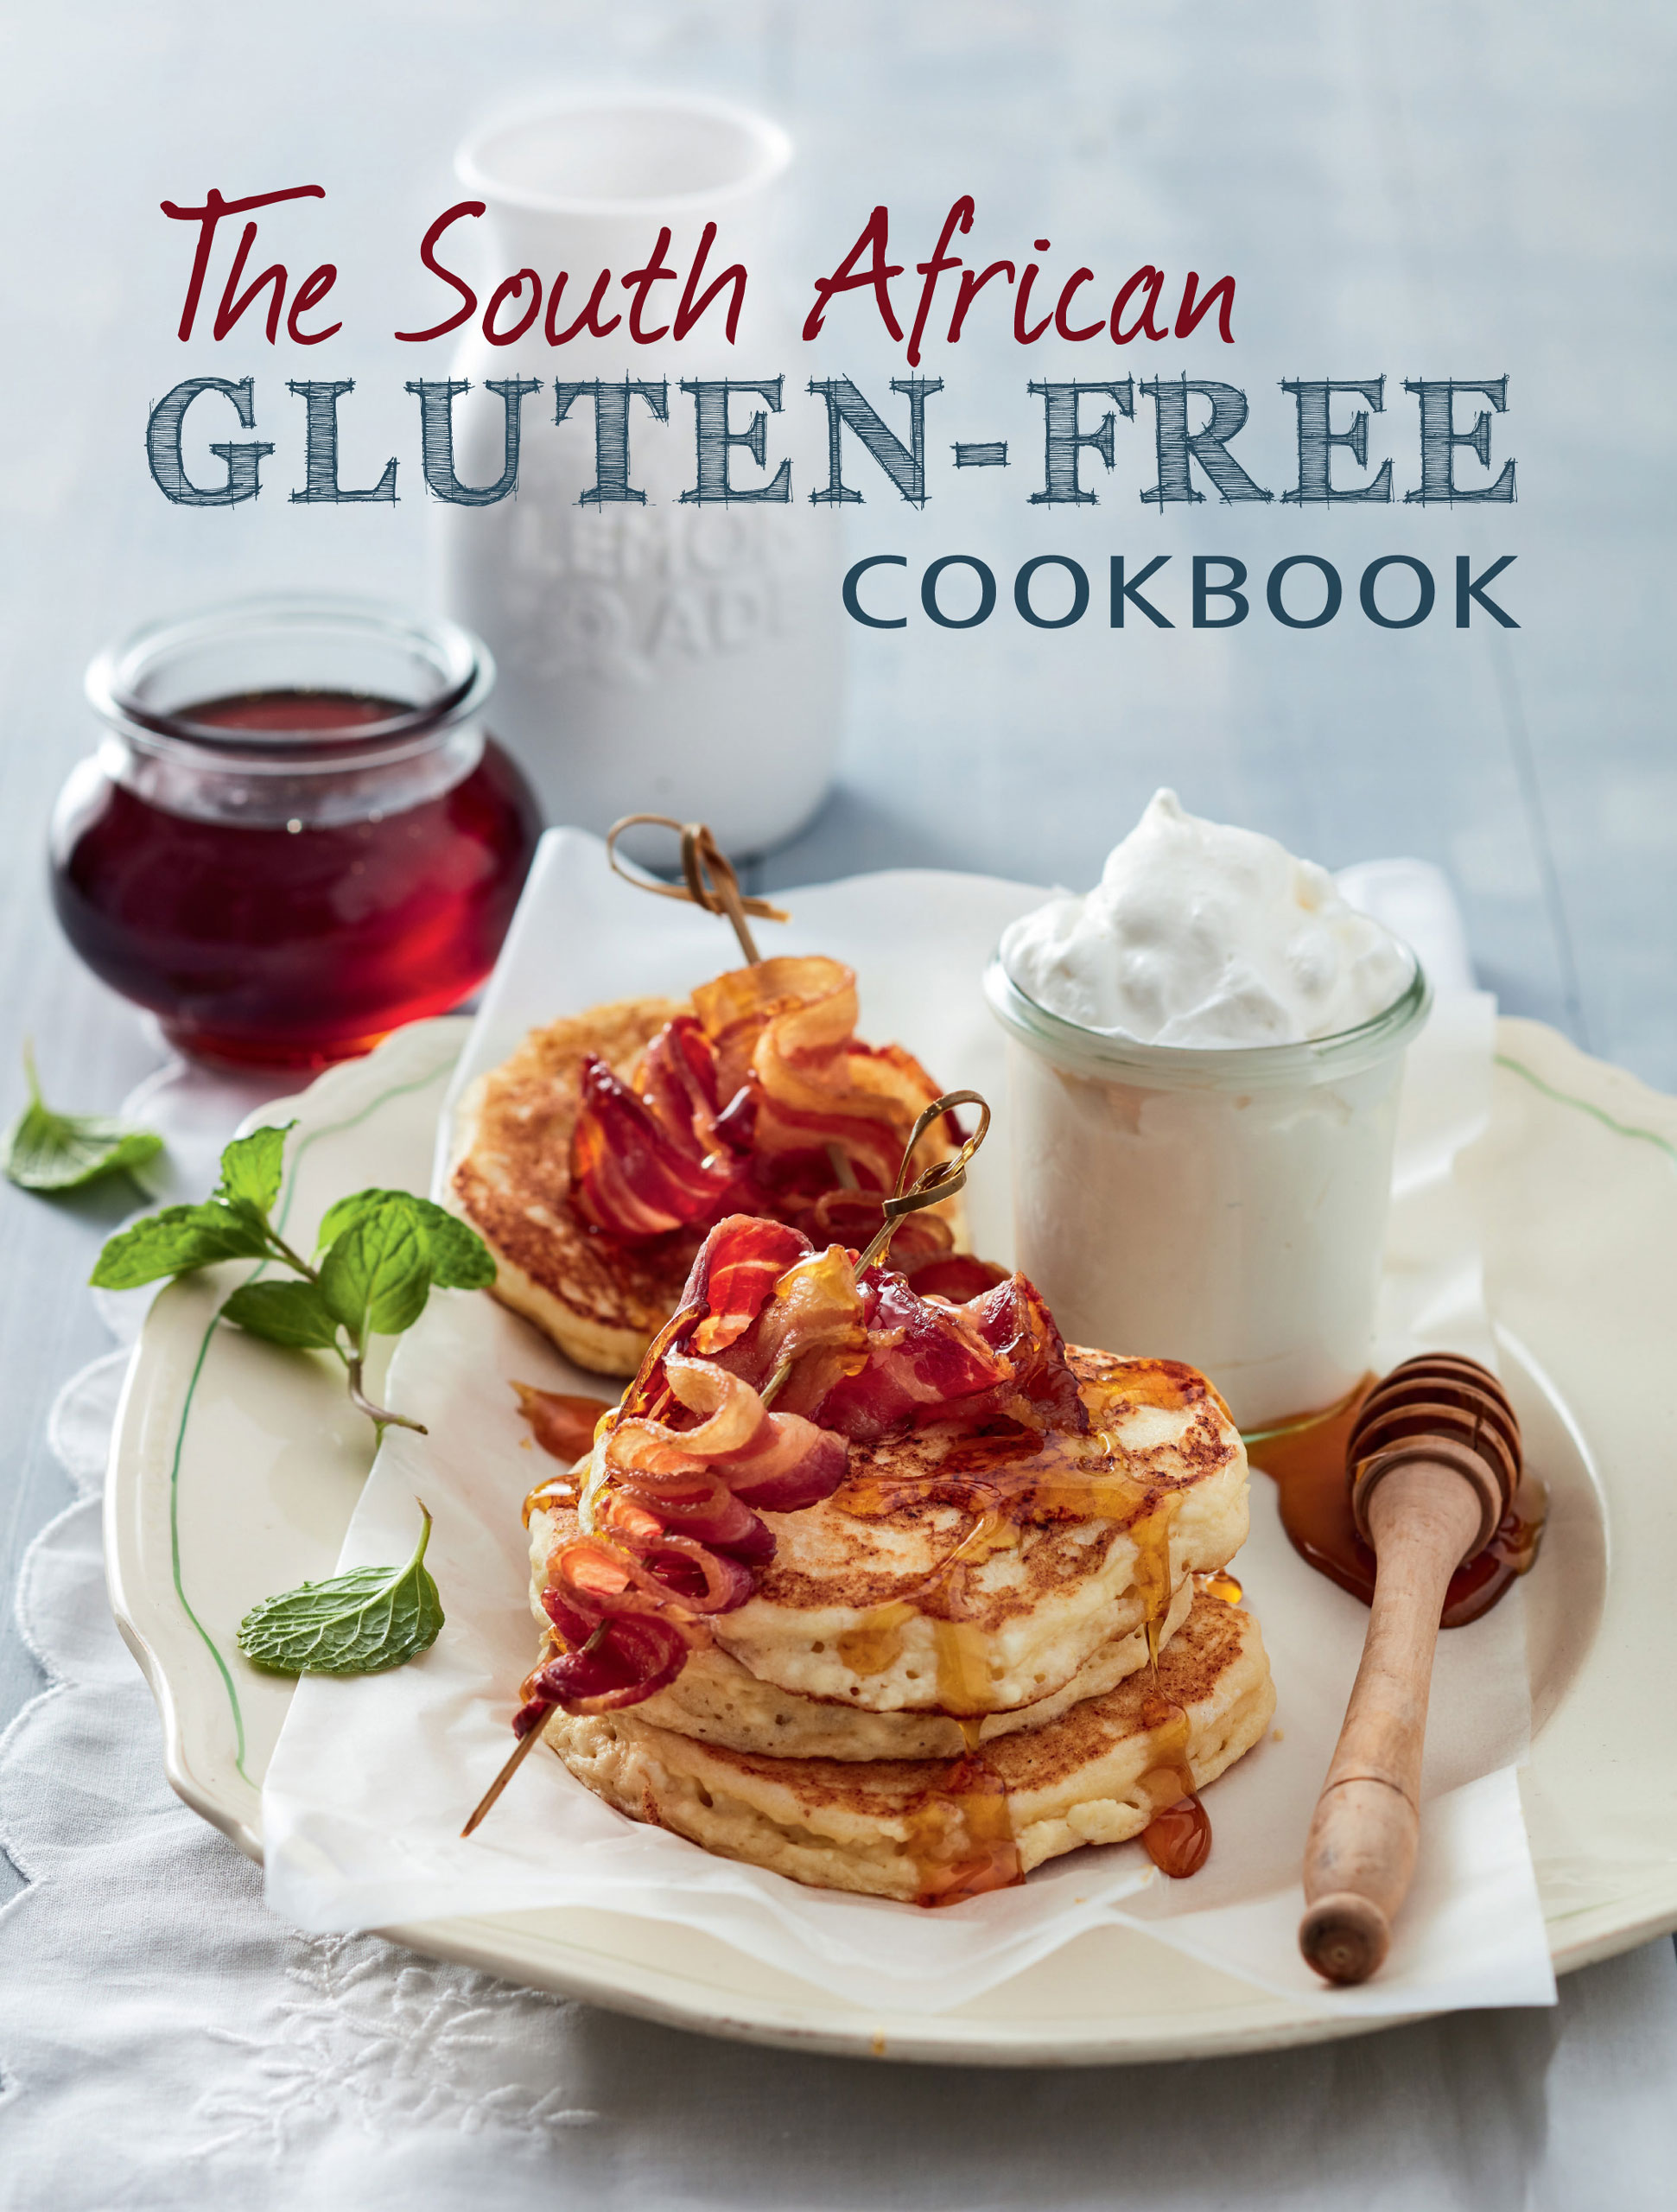 Picture of The South African gluten-free cookbook